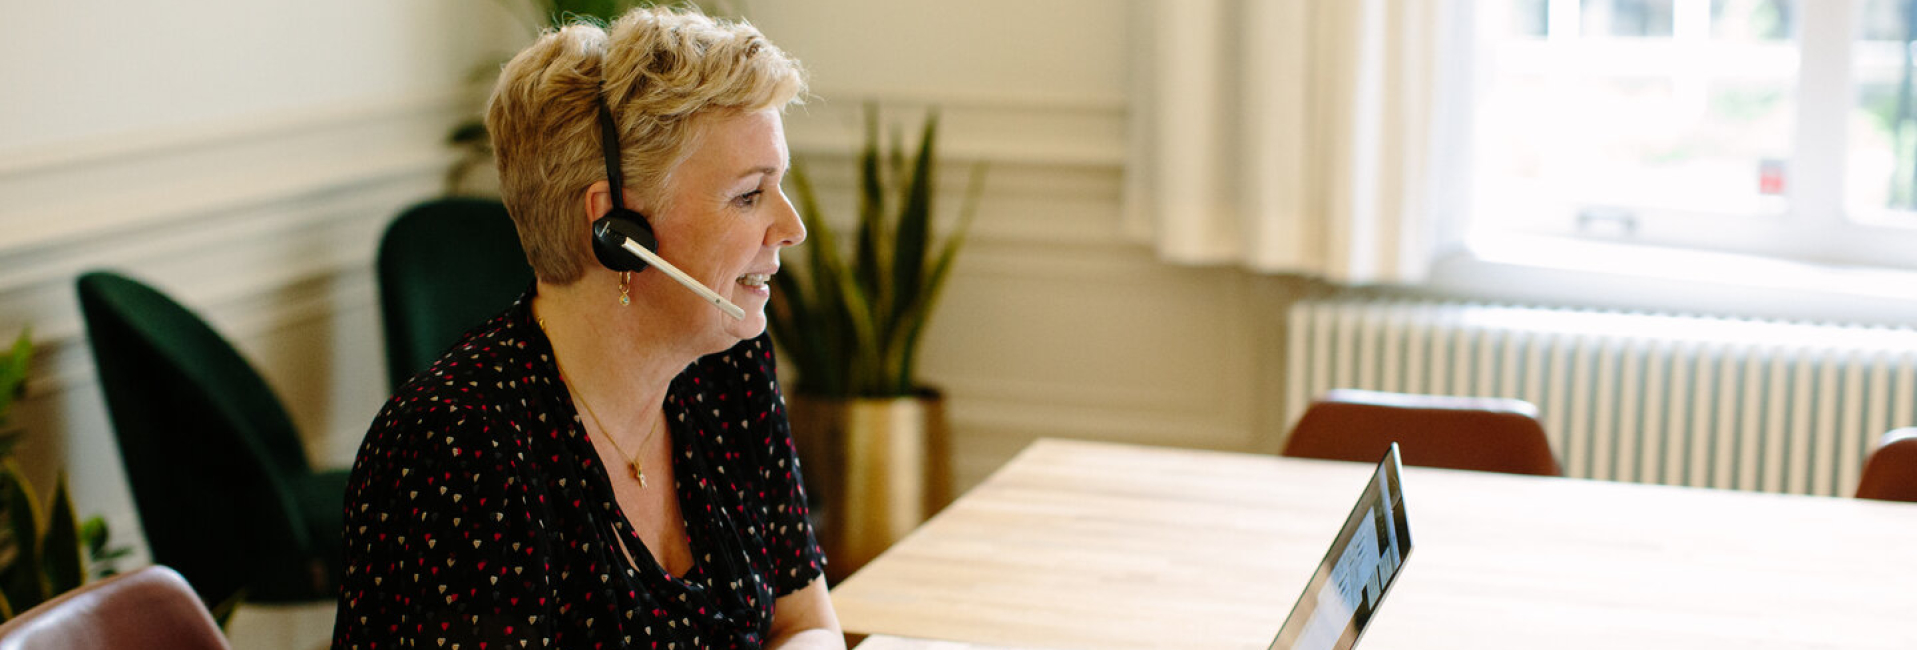 Contact - House of Care